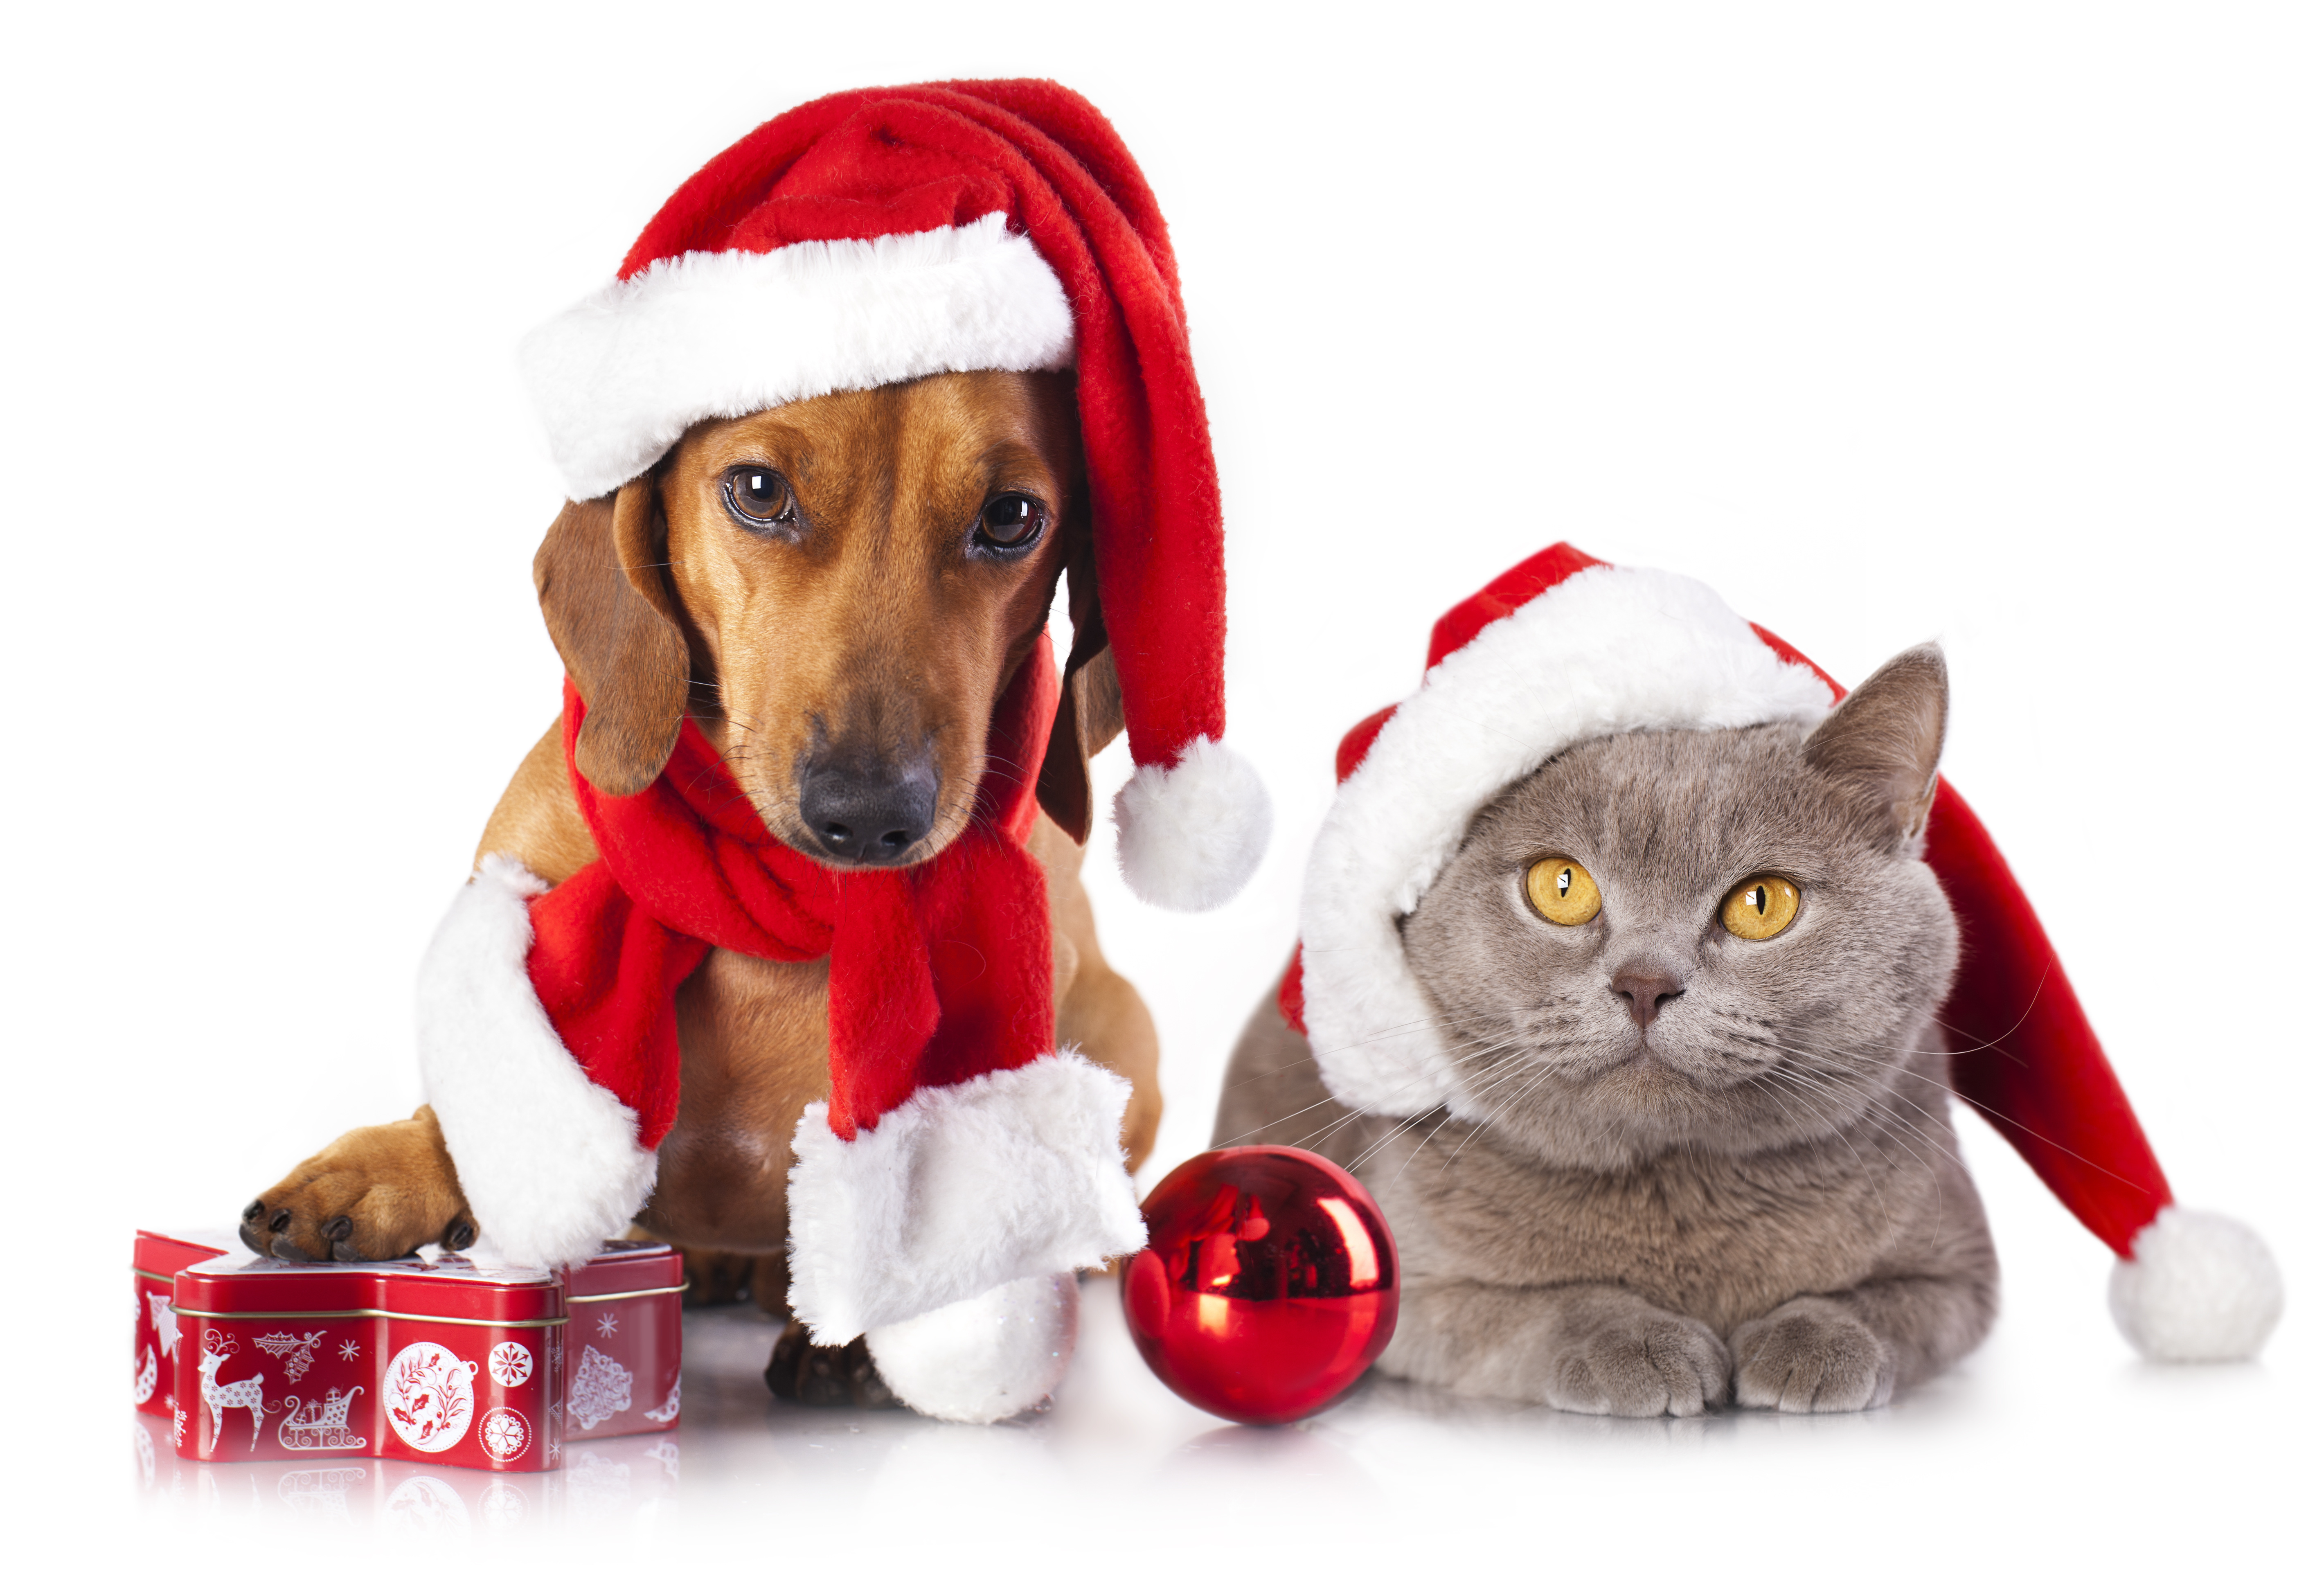 Cat in the hat ornaments - Holiday Christmas Holiday Dog Dachshund Cat Christmas Ornaments Wallpaper